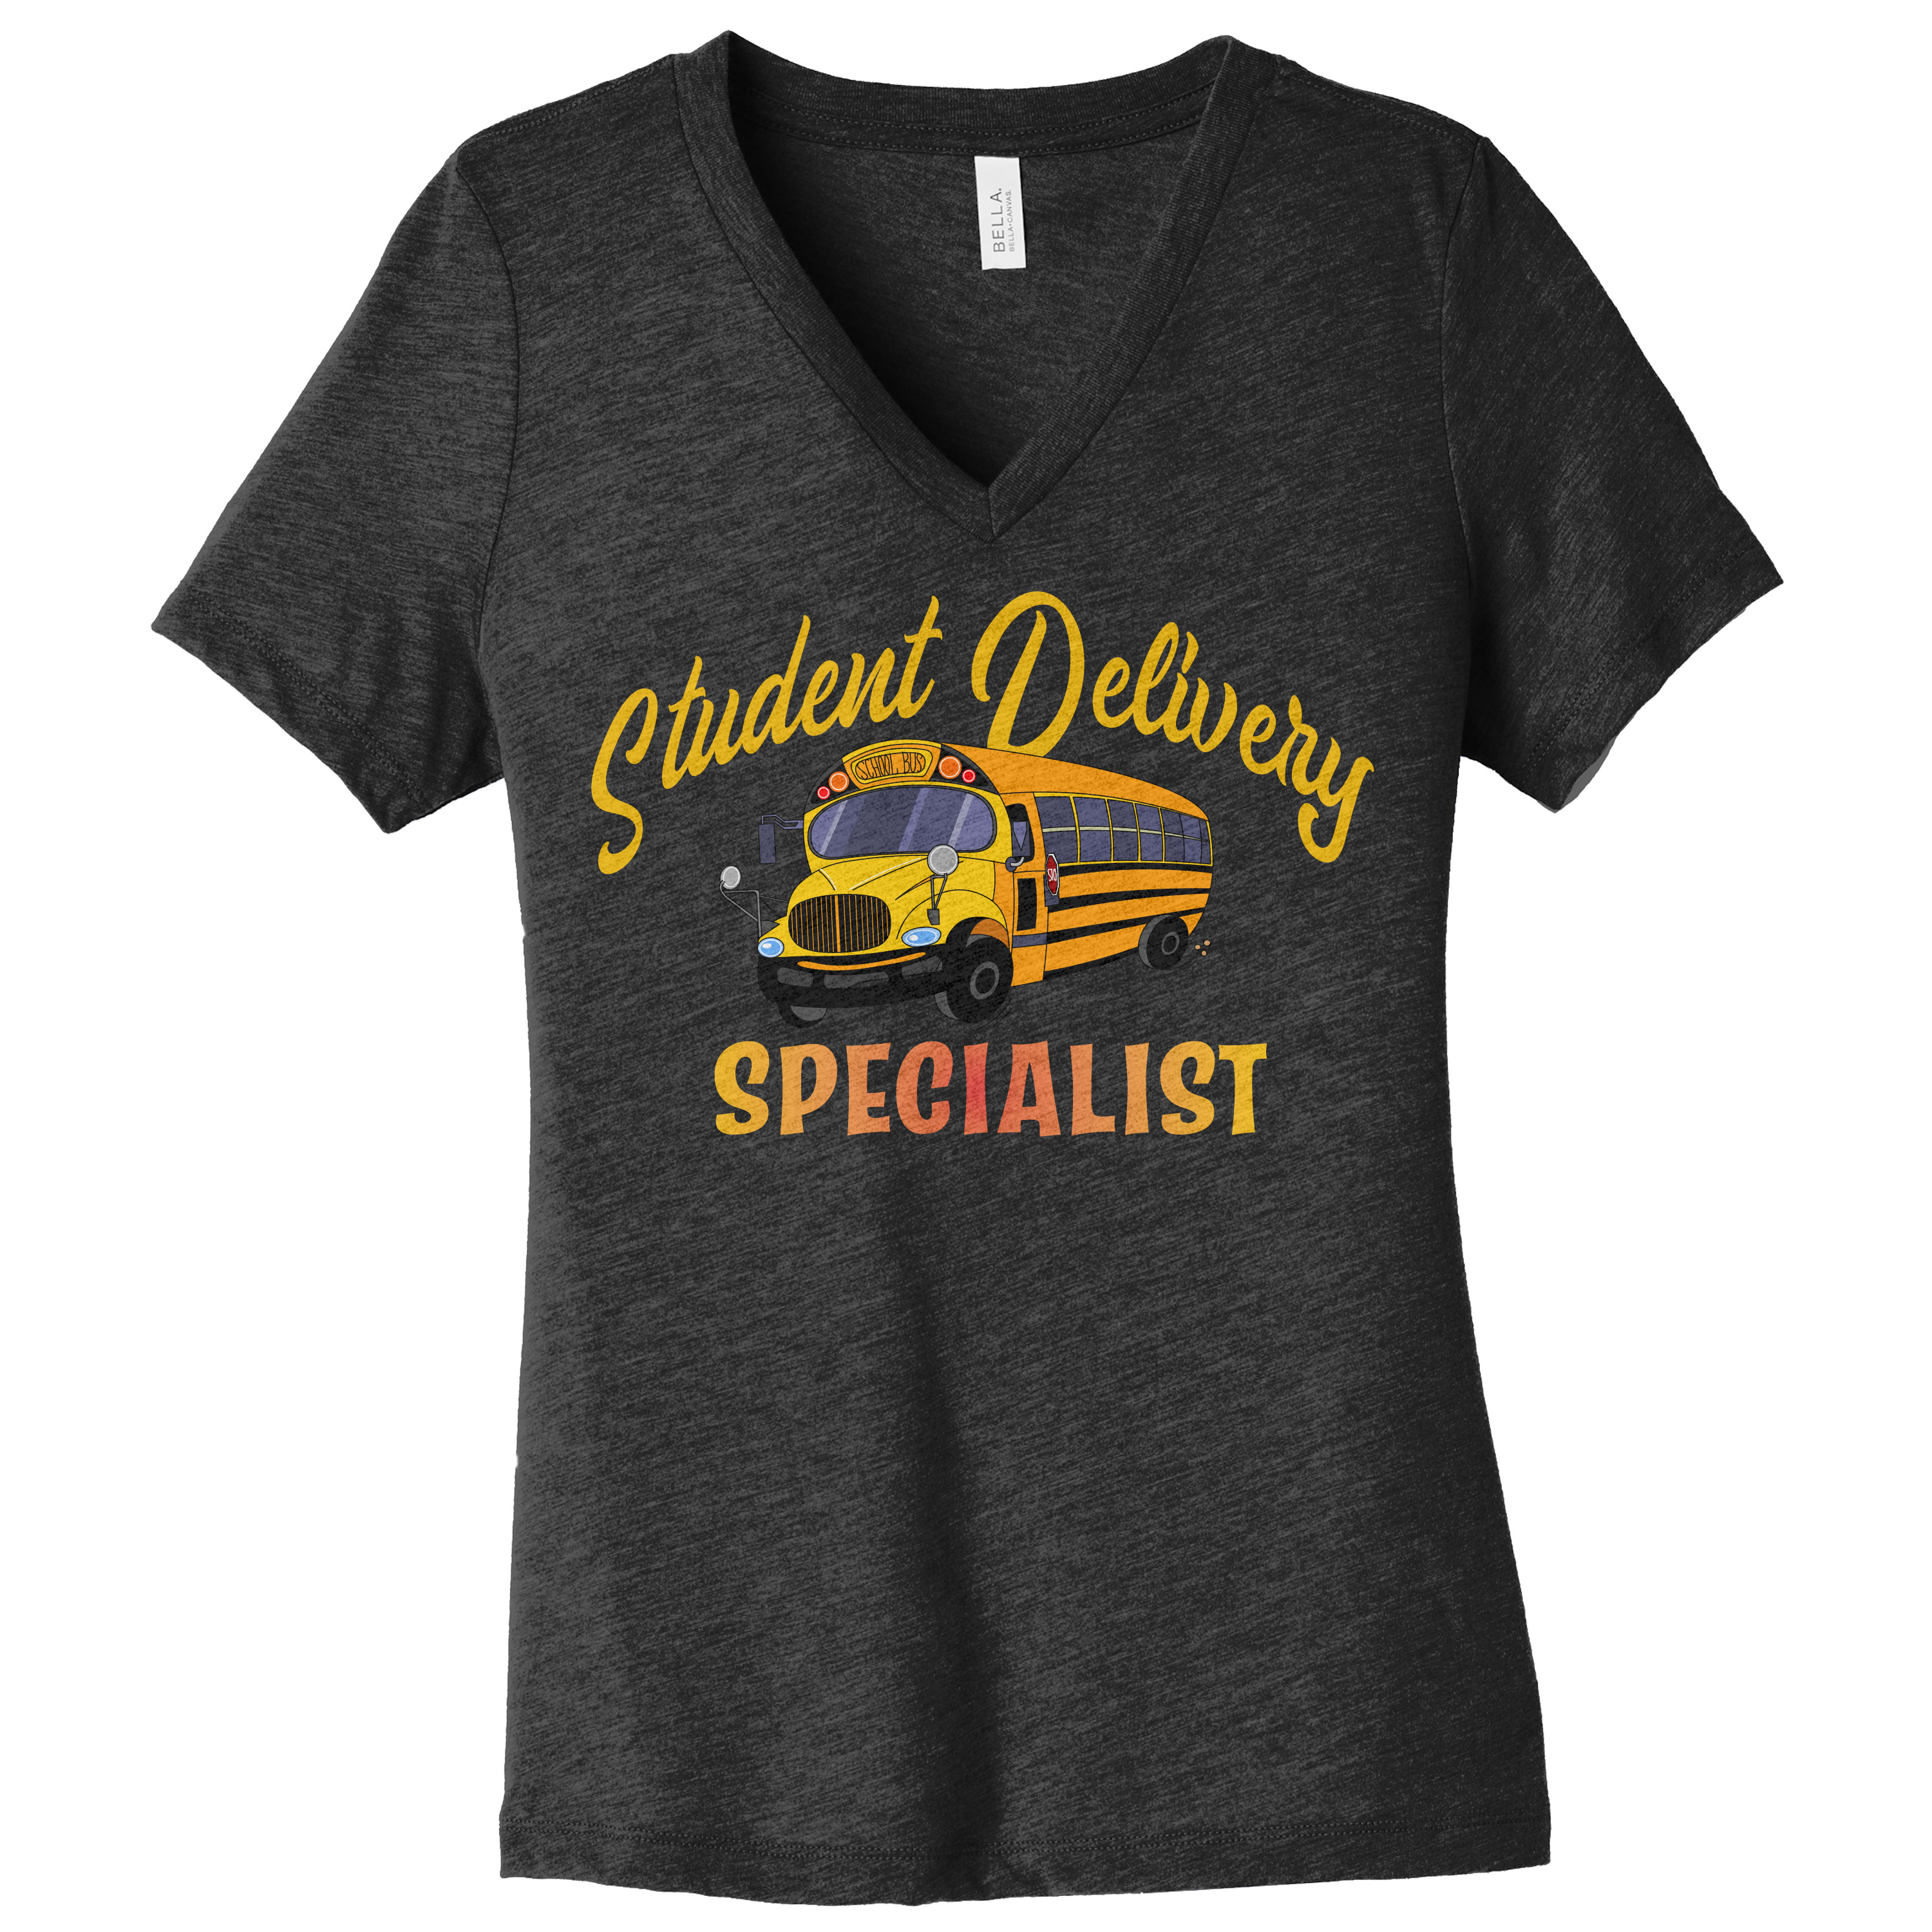 Student Delivery Specialist - Ladies V-Neck